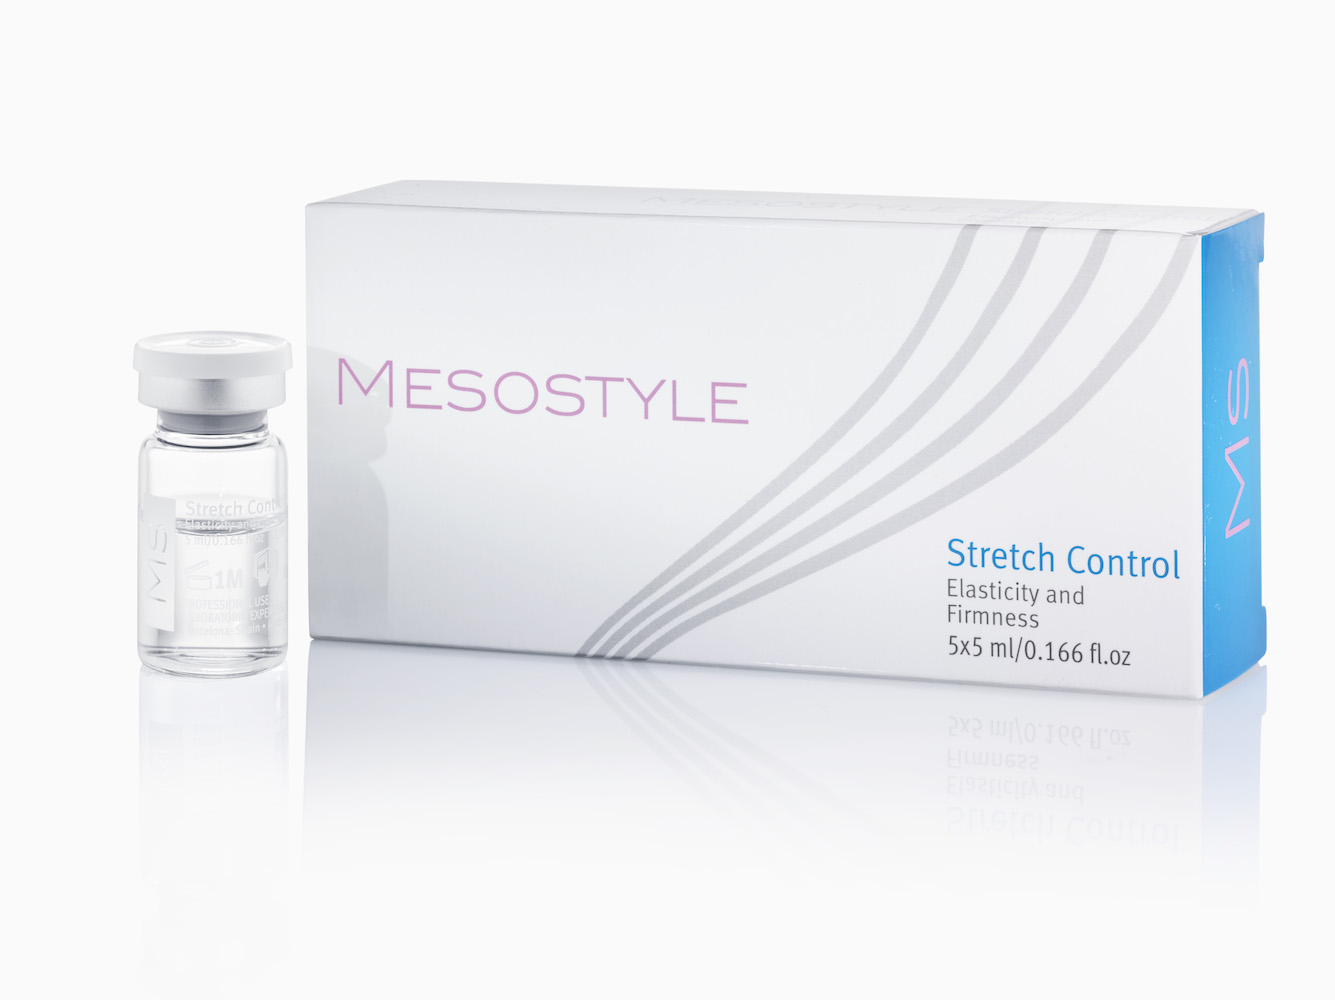 Mesostyle Stretch Control